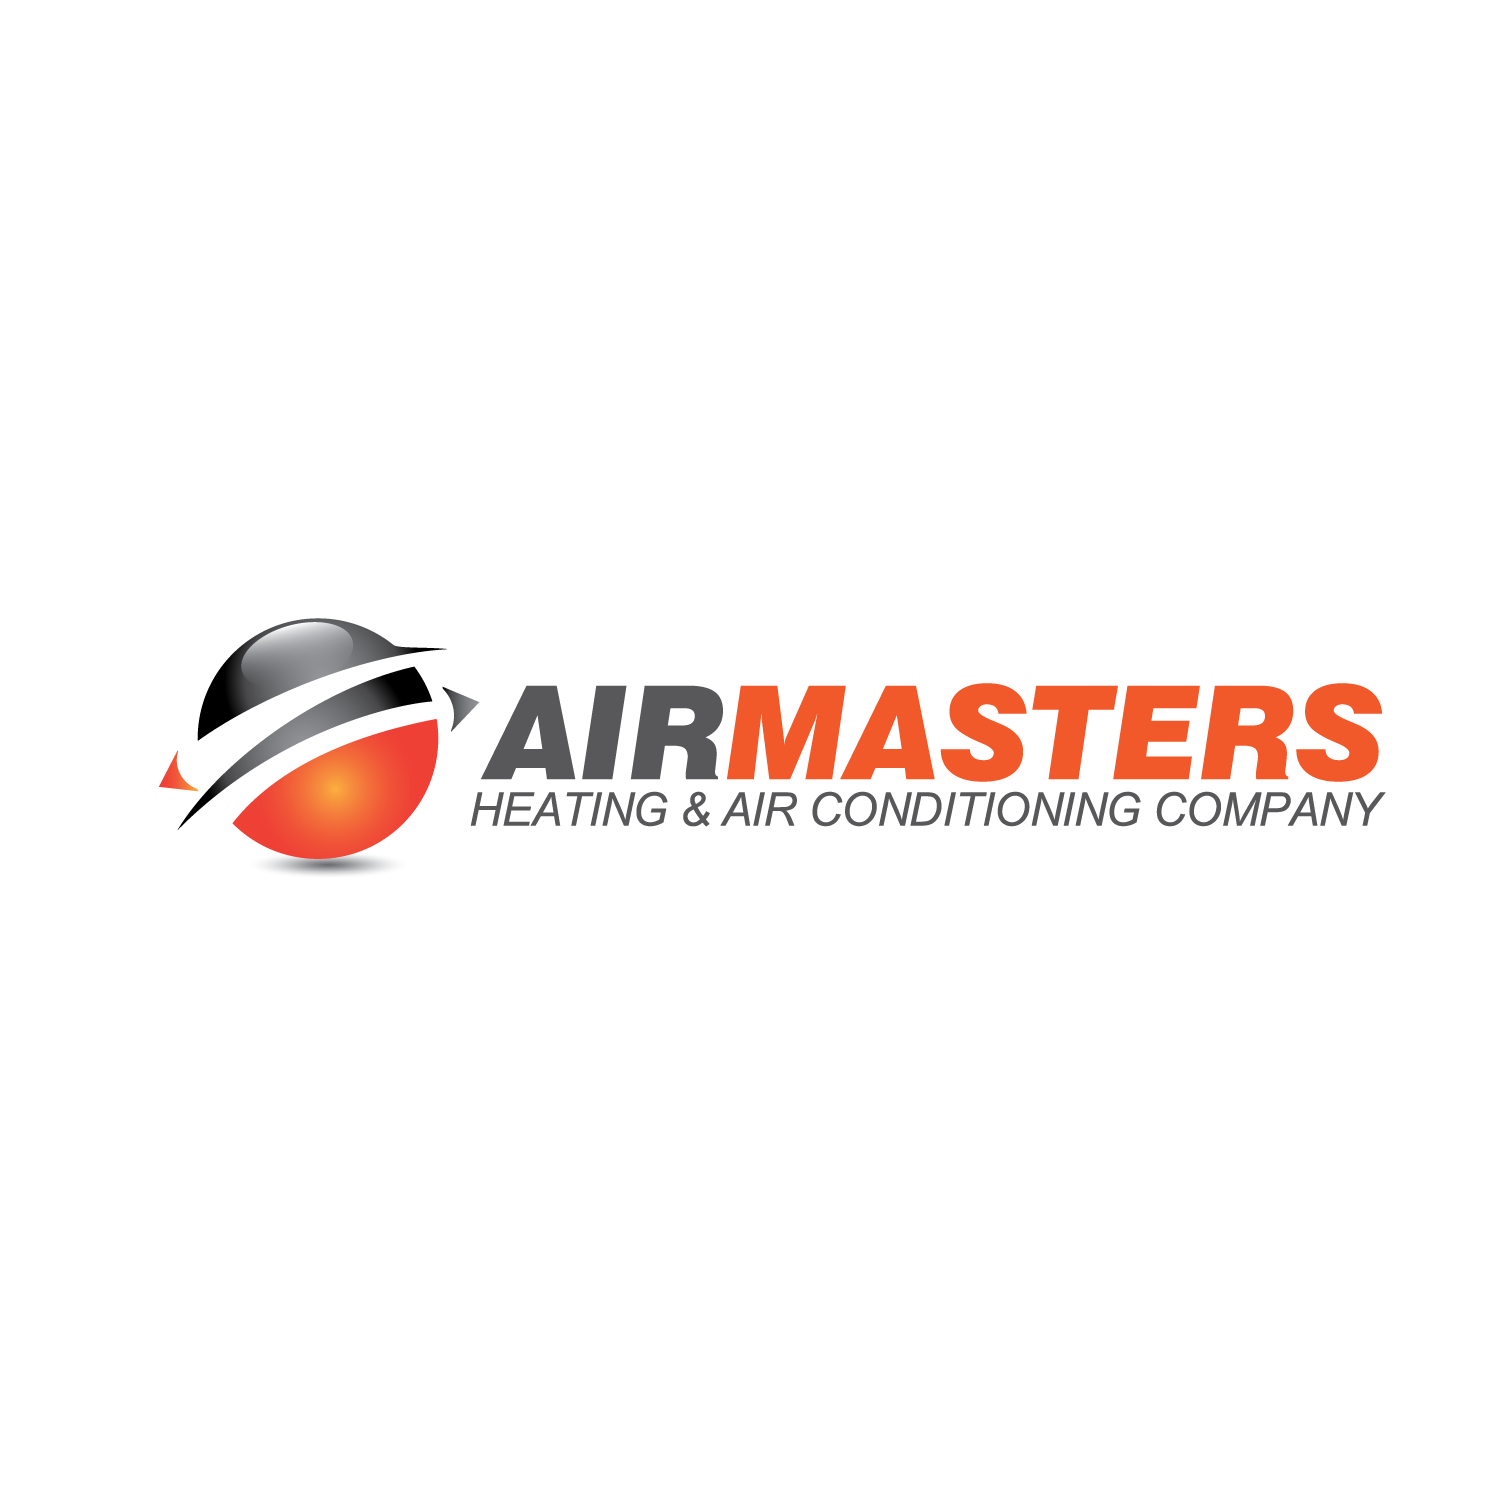 Air Masters Heating & Air Conditioning - Centreville, VA - Heating & Air Conditioning